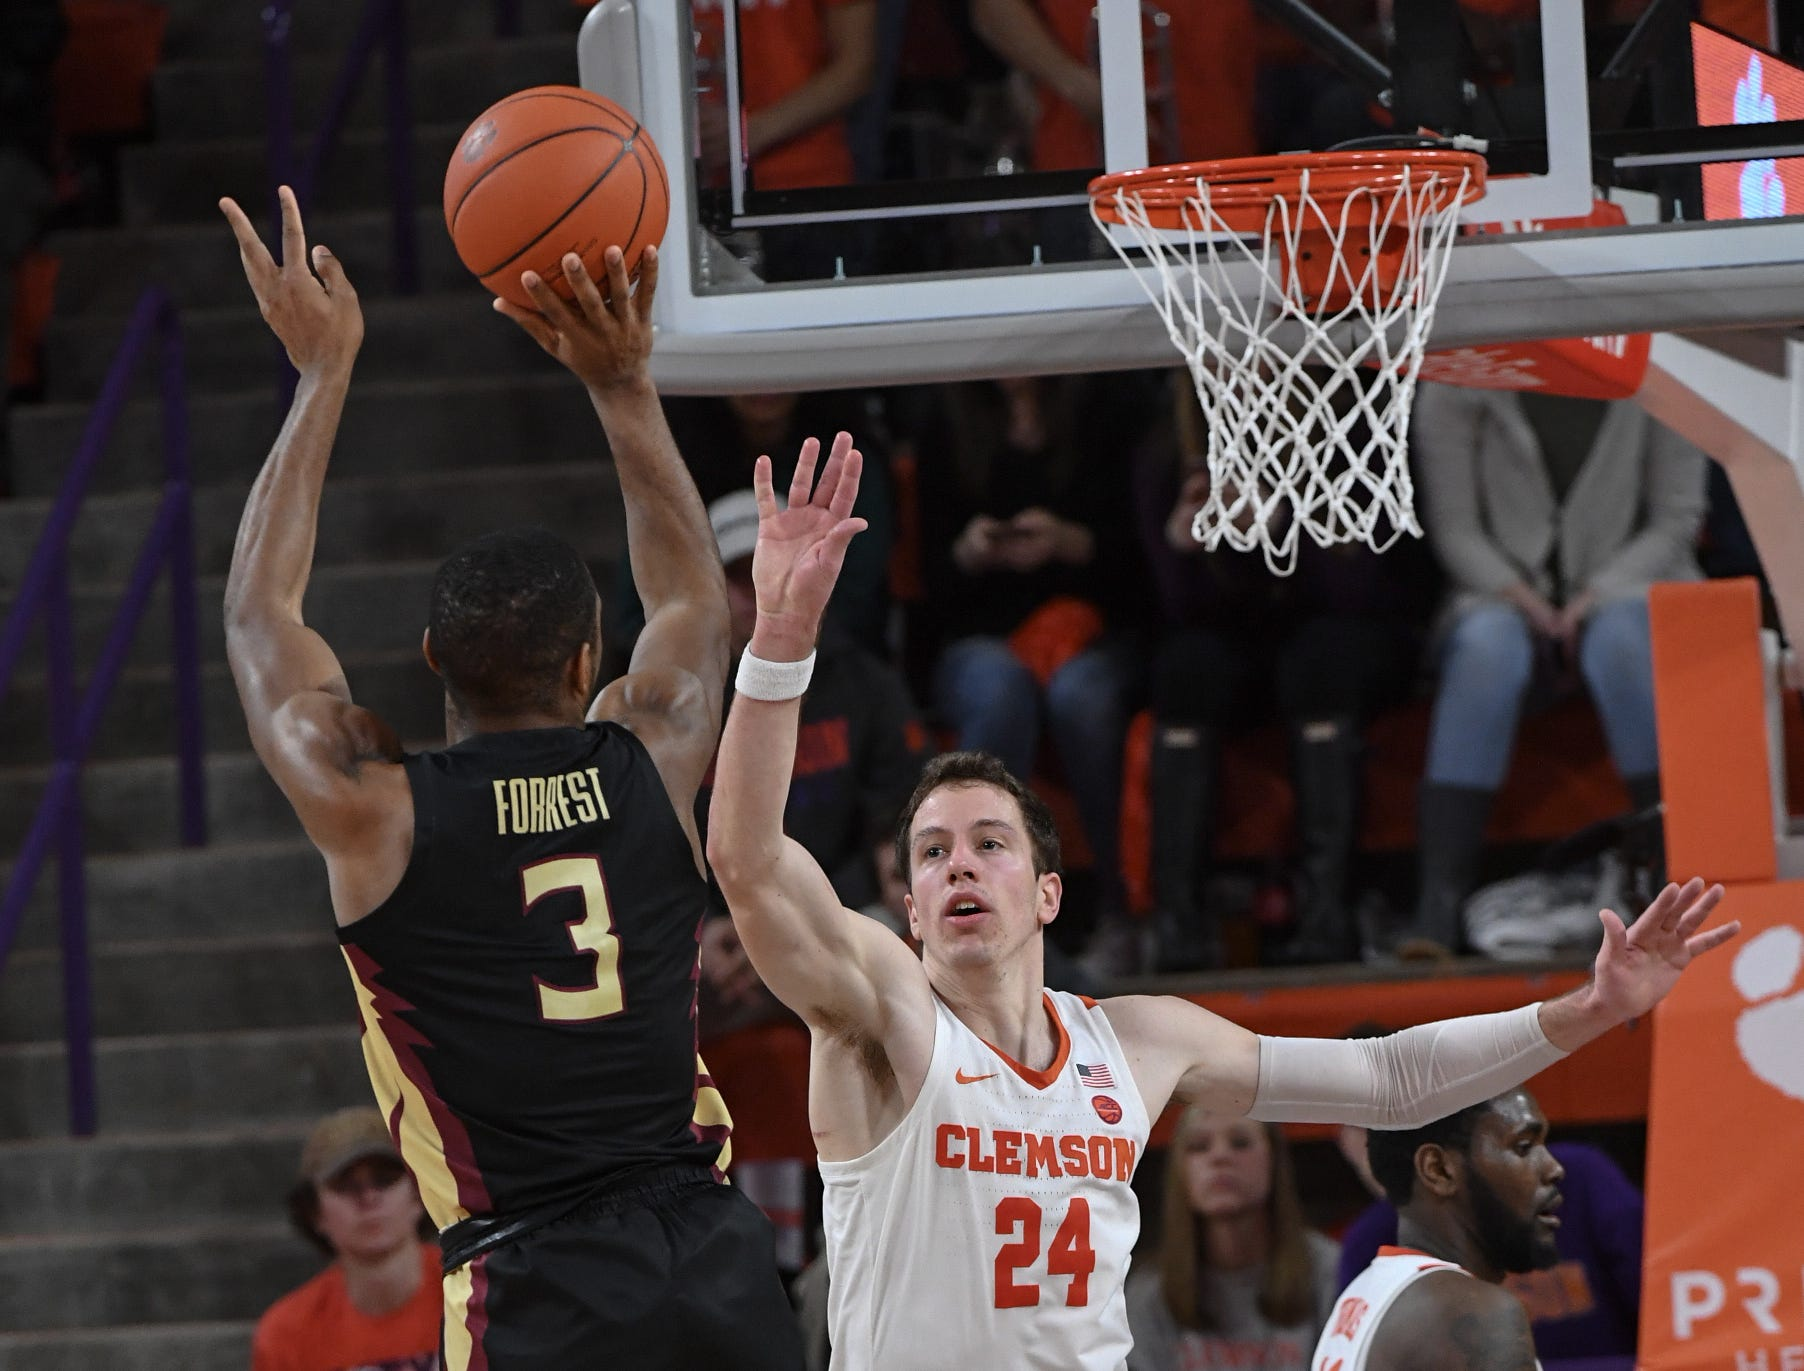 Clemson forward David Skara (24) defends Florida State guard Trent Forrest(3) during the second half at Littlejohn Coliseum in Clemson Tuesday, February 19, 2019.